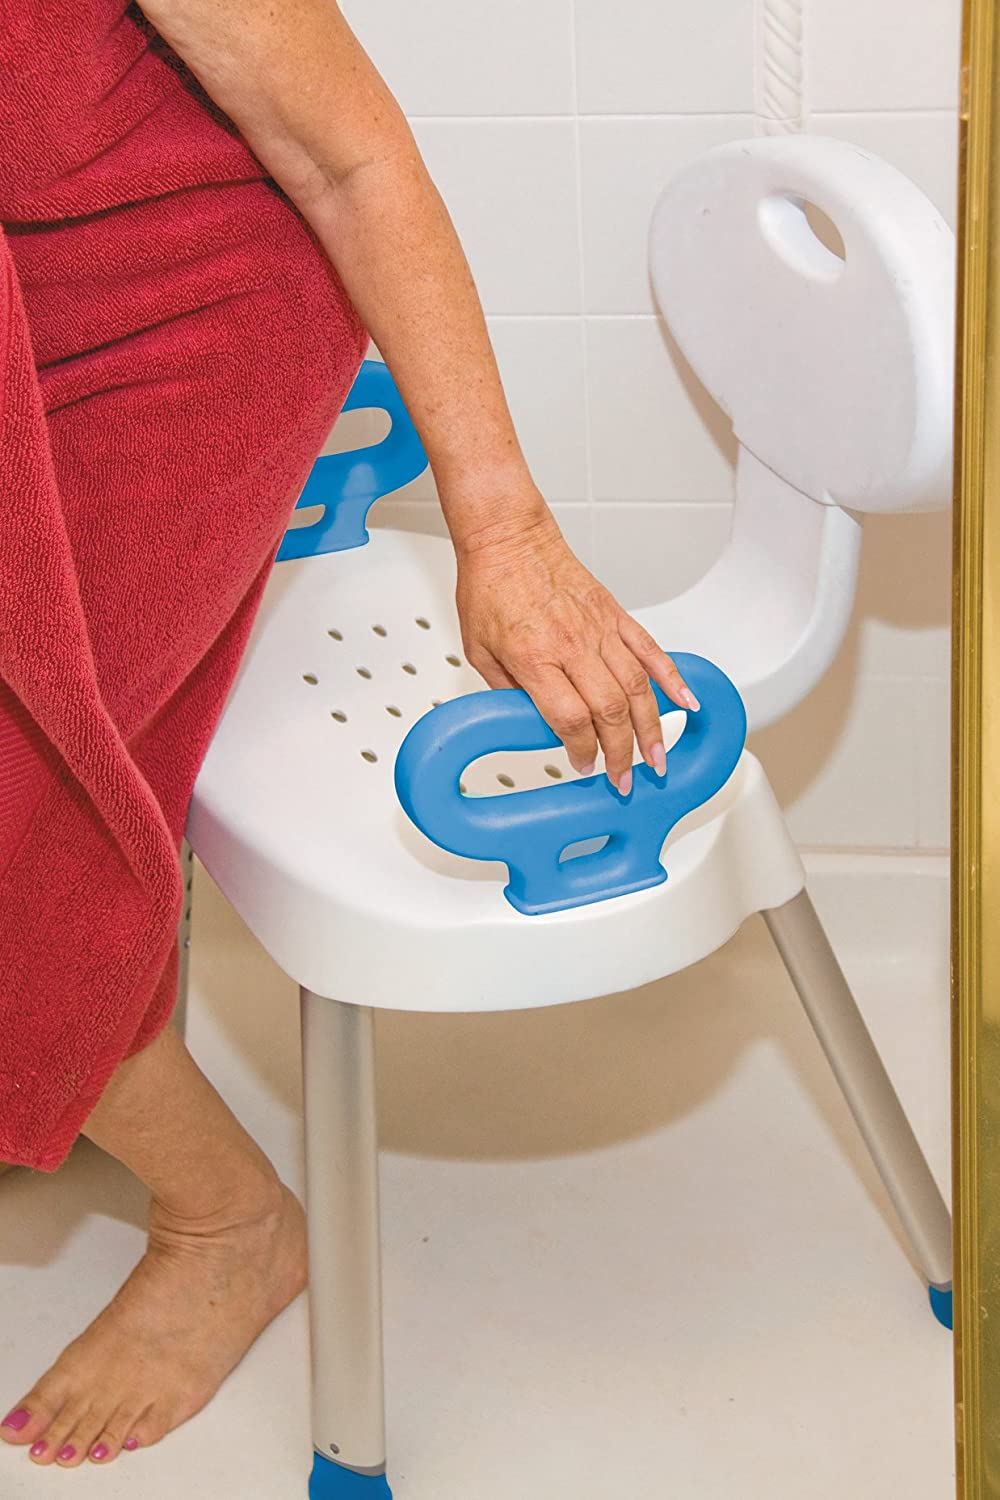 Amazon.com: Carex Health Brands E-Z Bath And Shower Seat with ...